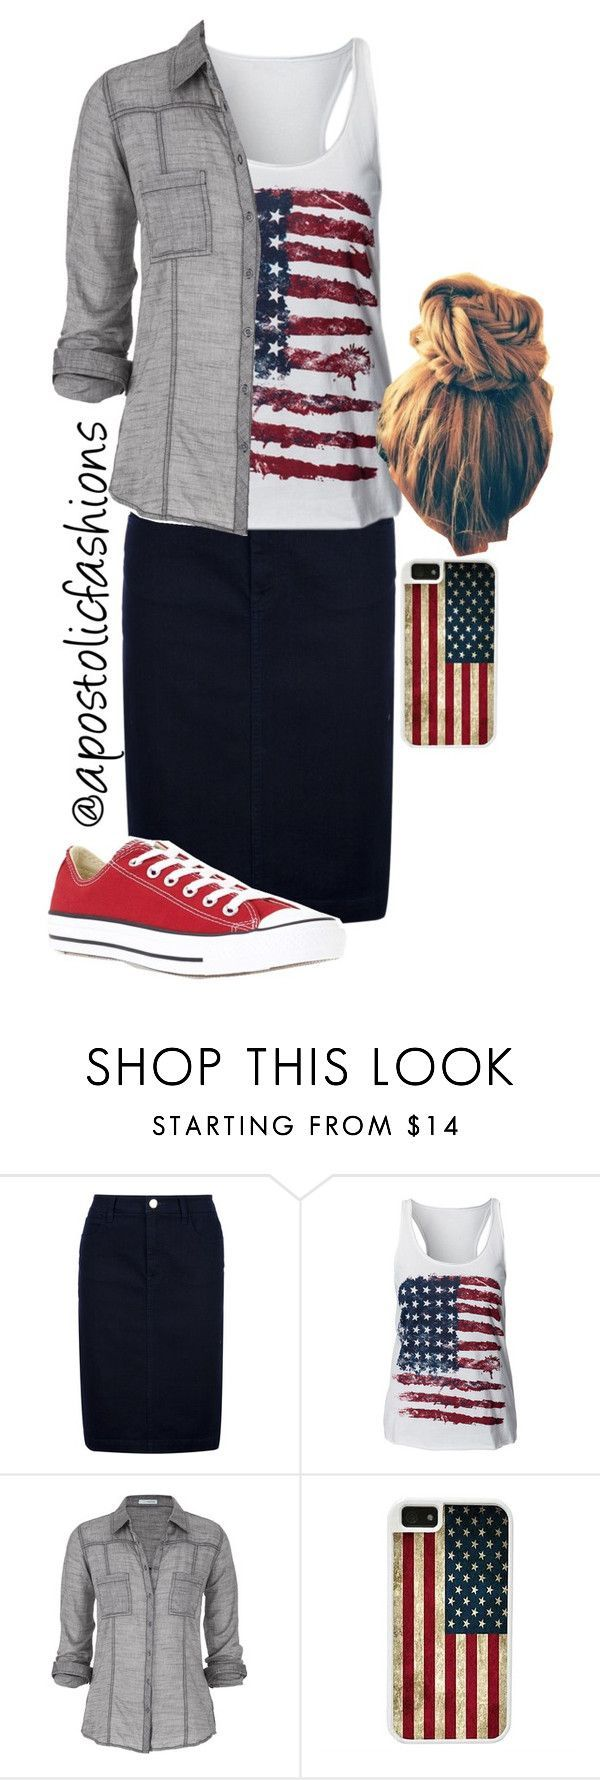 """Apostolic Fashions #659"" by apostolicfashions ❤️ liked on Polyvore featuring Burberry, maurices, Converse and CellPowerCases"